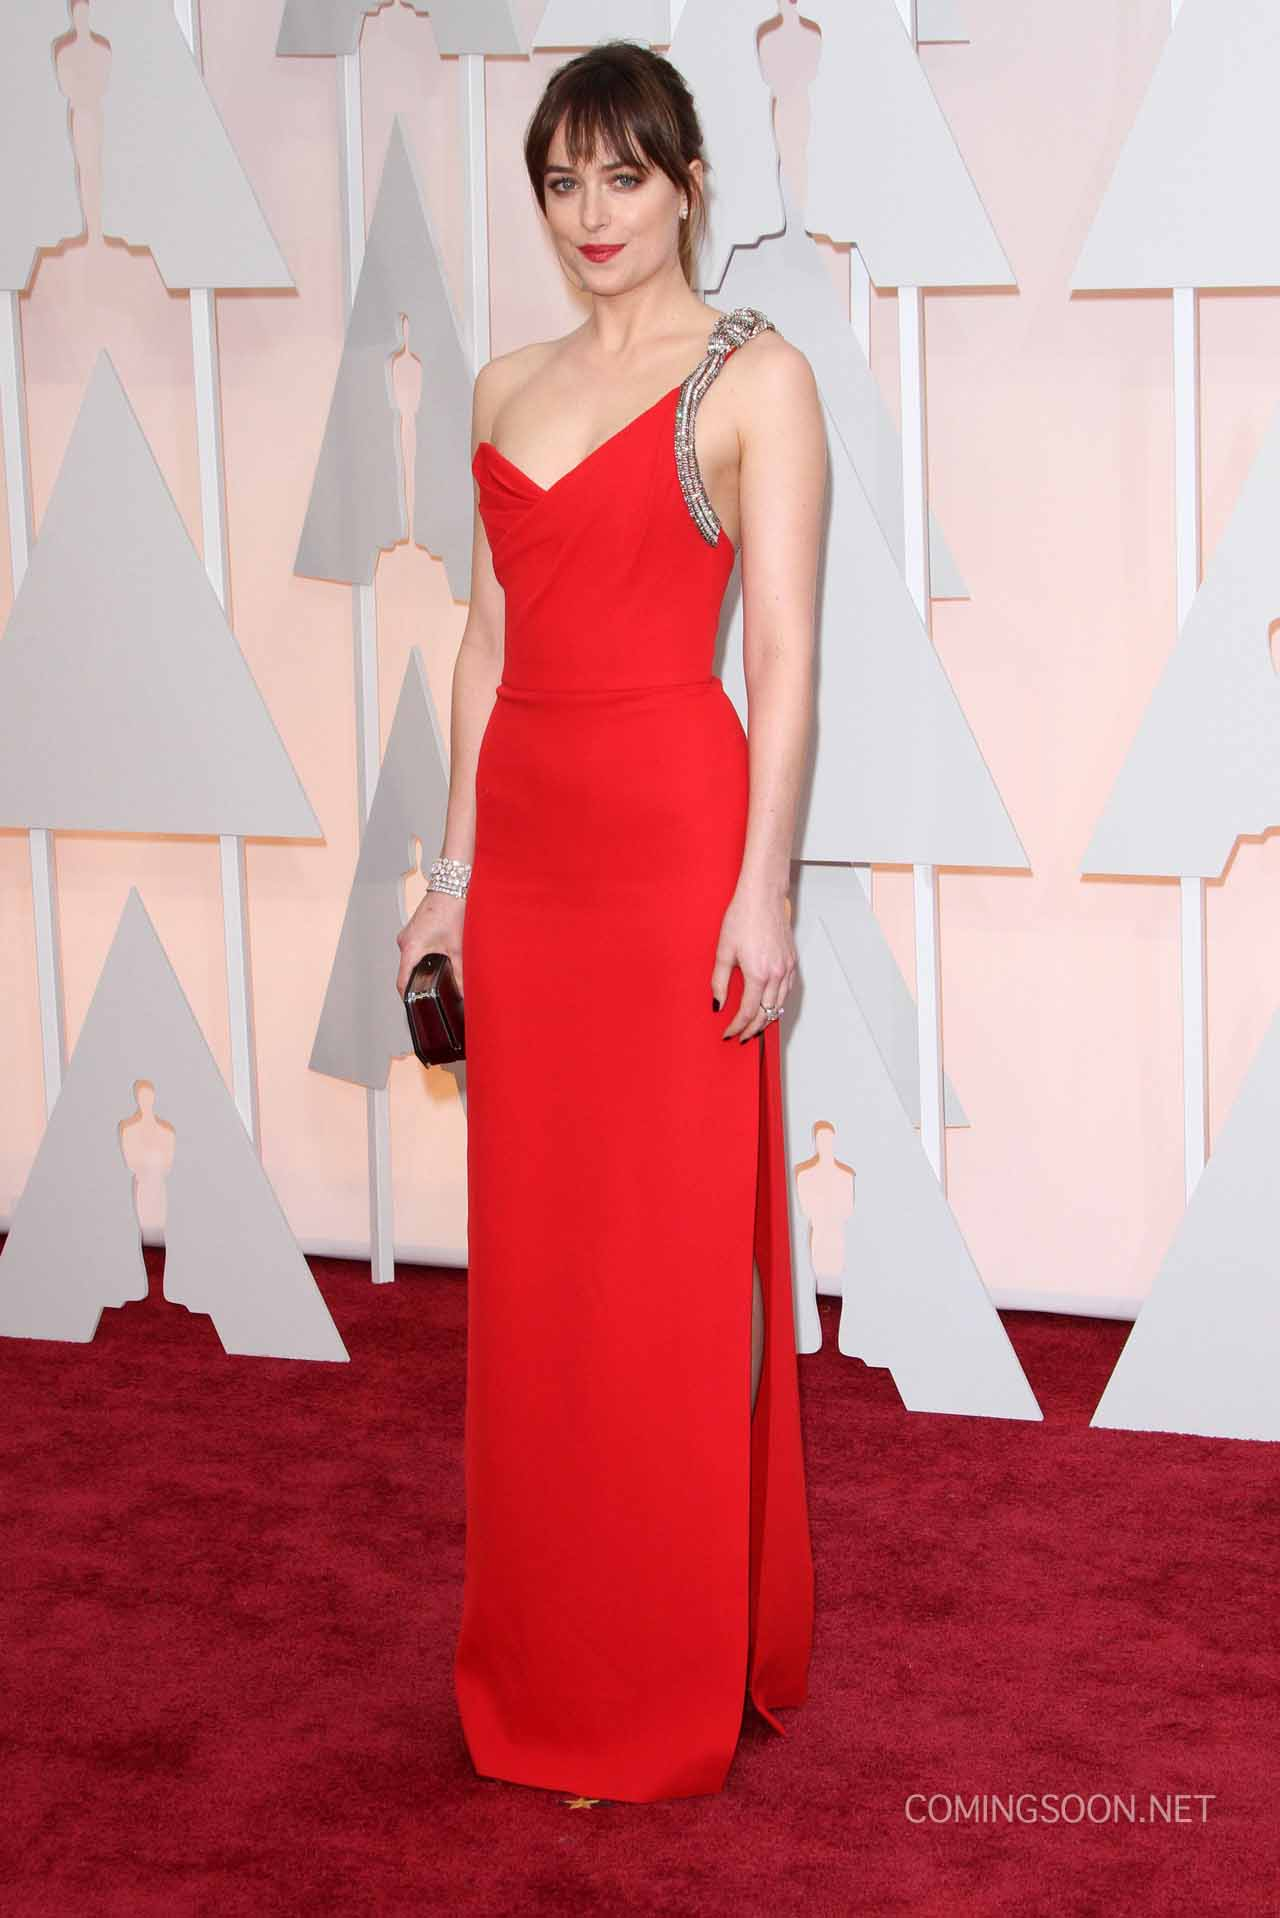 The 87th Oscars Red Carpet Arrivals